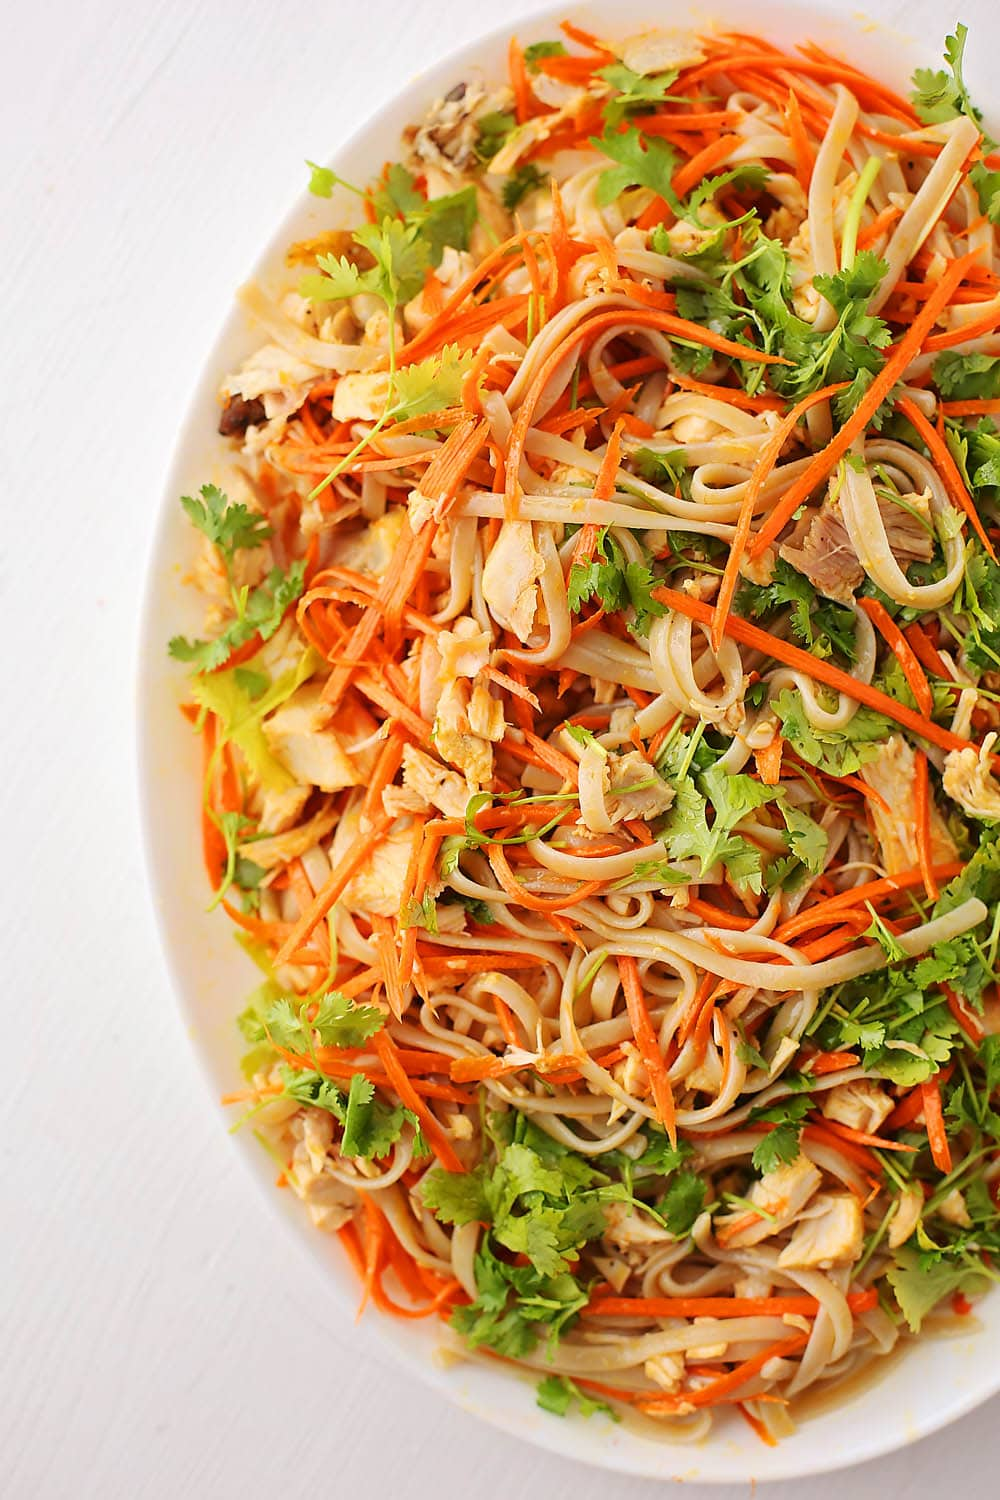 plate with noodles mixed with shredded carrots and cilantro